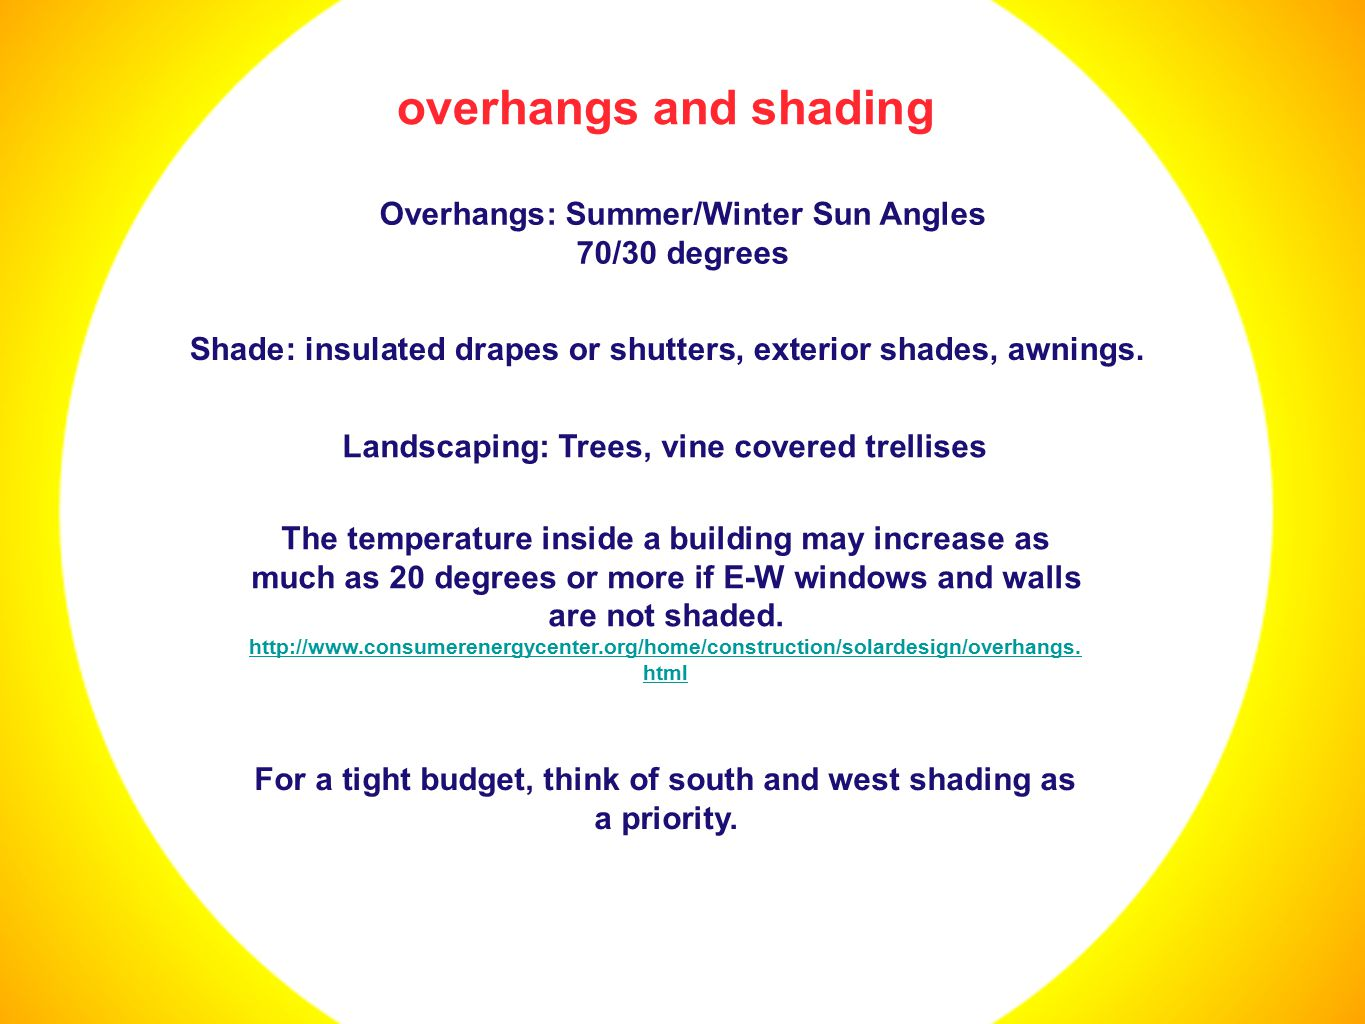 The temperature inside a building may increase as much as 20 degrees or more if E-W windows and walls are not shaded.